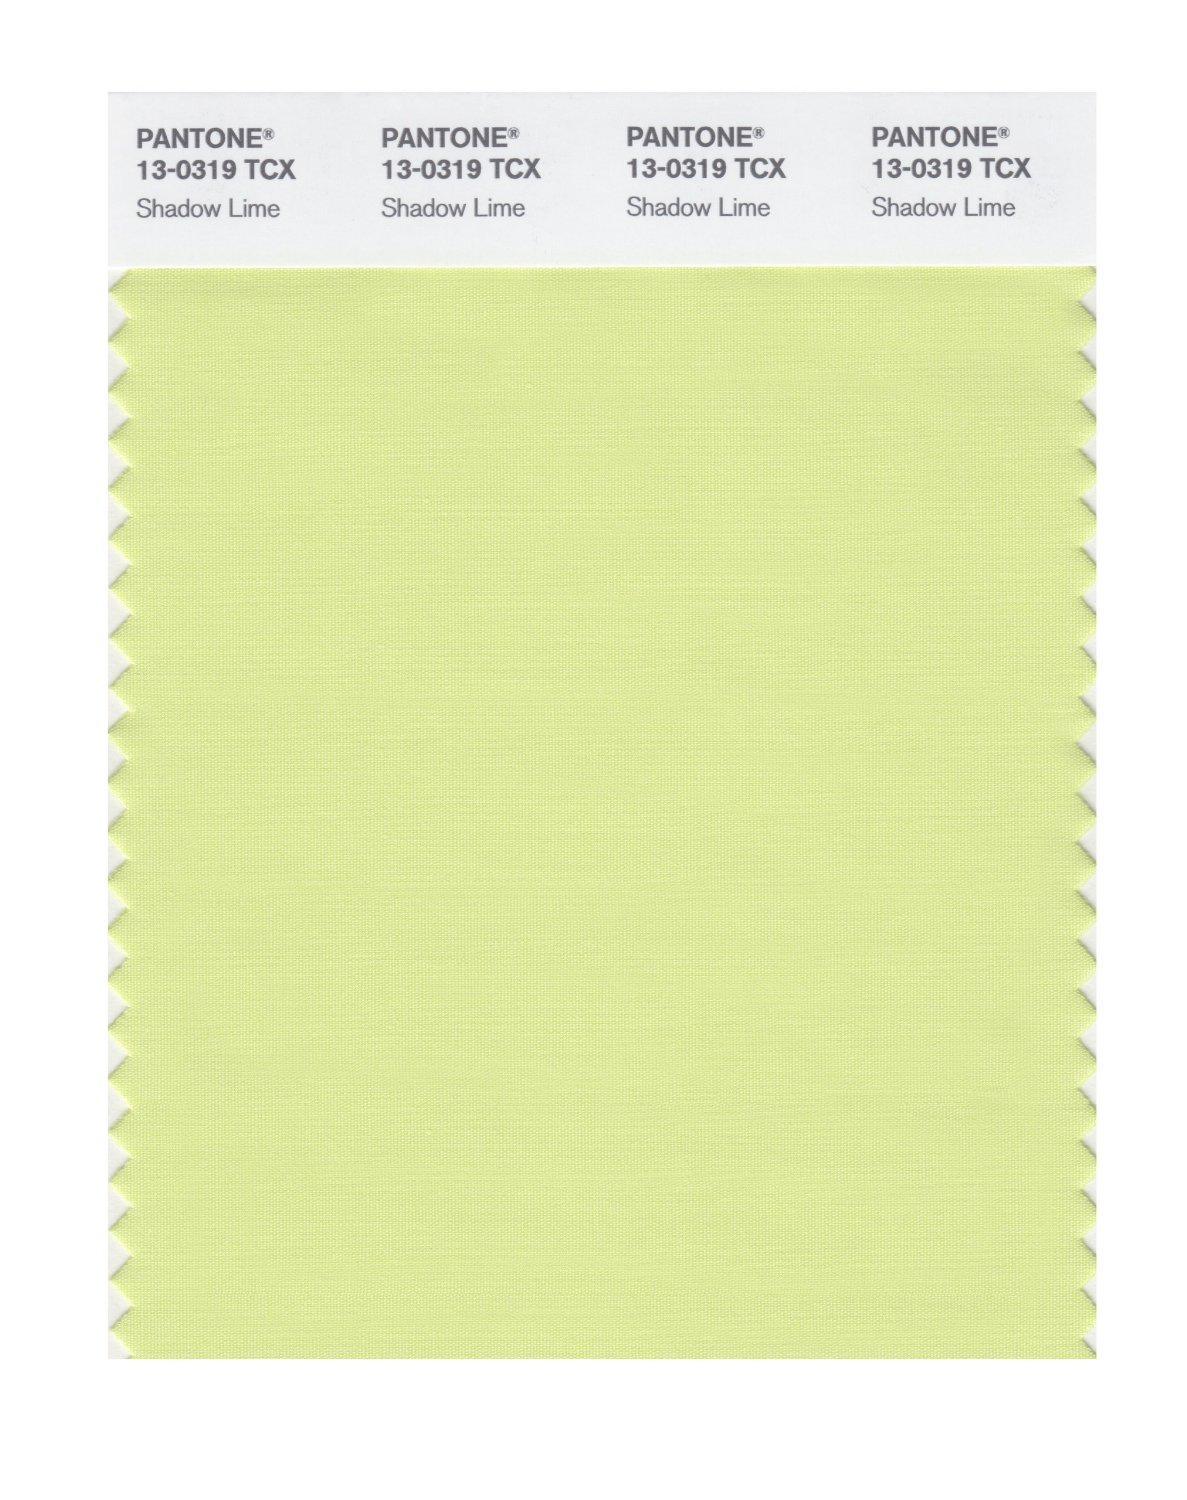 Pantone Smart Swatch 13-0319 Shadow Lime